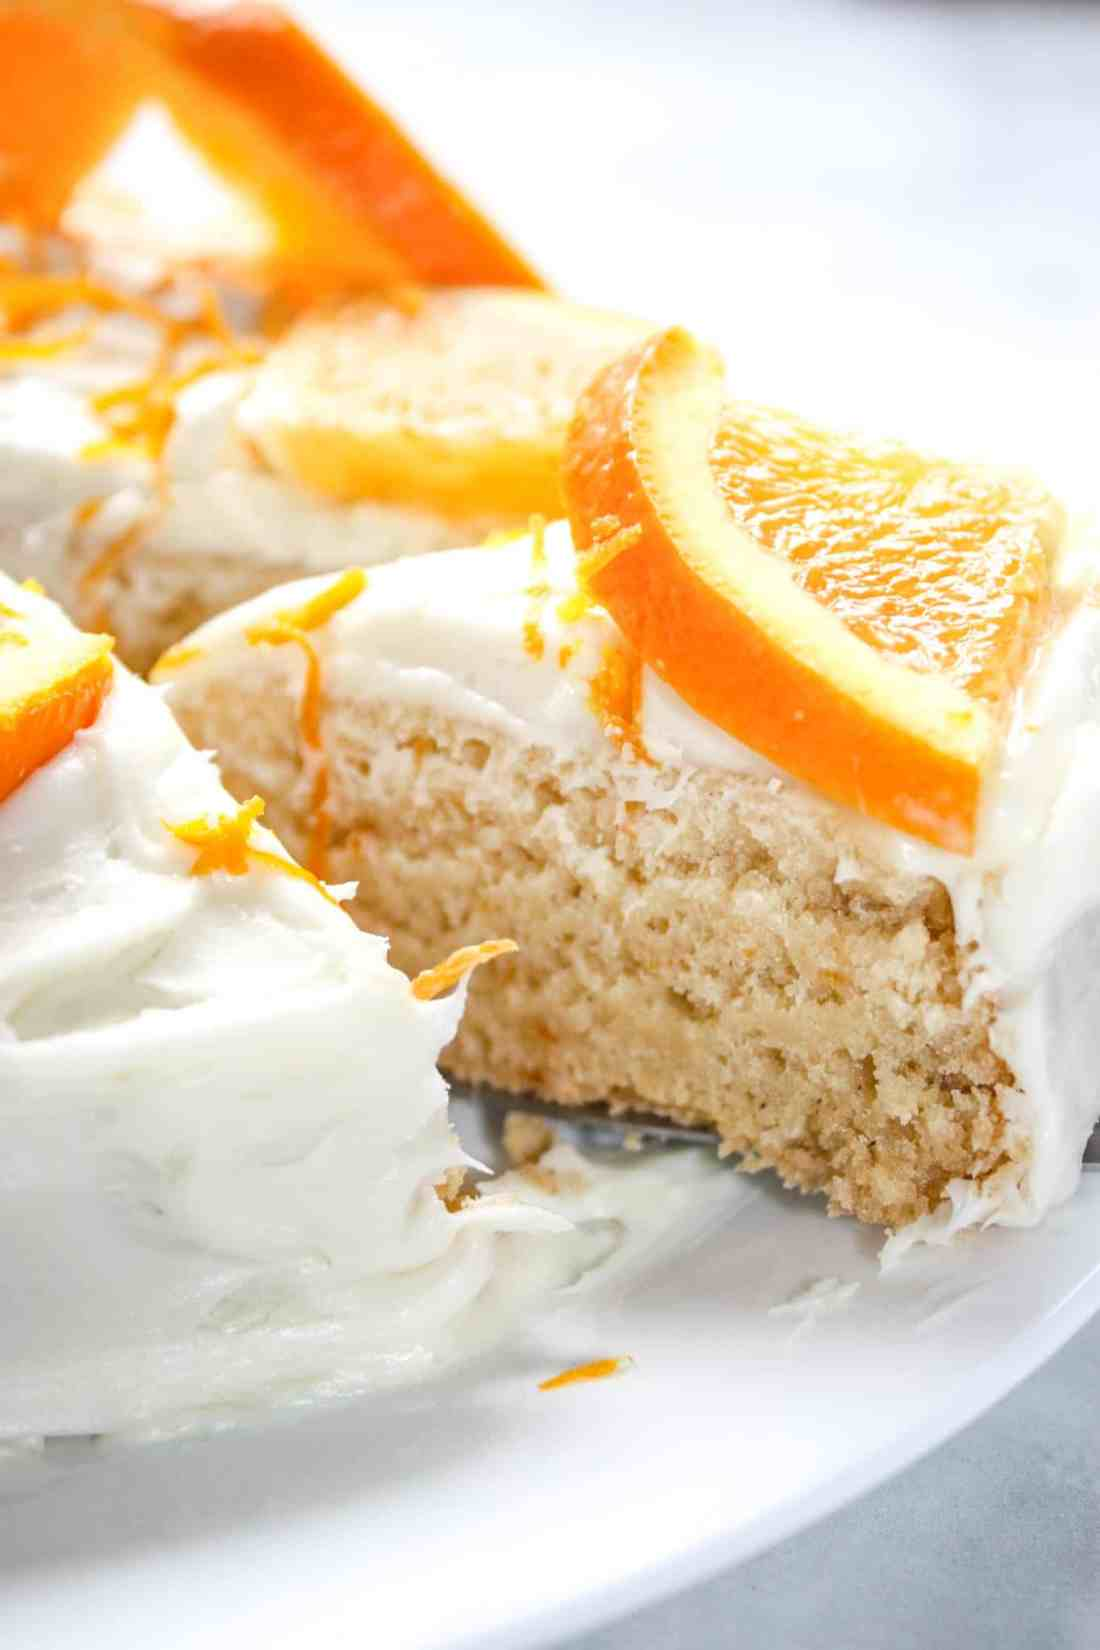 Spring and summer bring on cravings for all things citrus!  This Instant Pot Orange Cake is an easy pressure cooker recipe that complement any warm weather meal. This gluten free cake is moist and delicious!